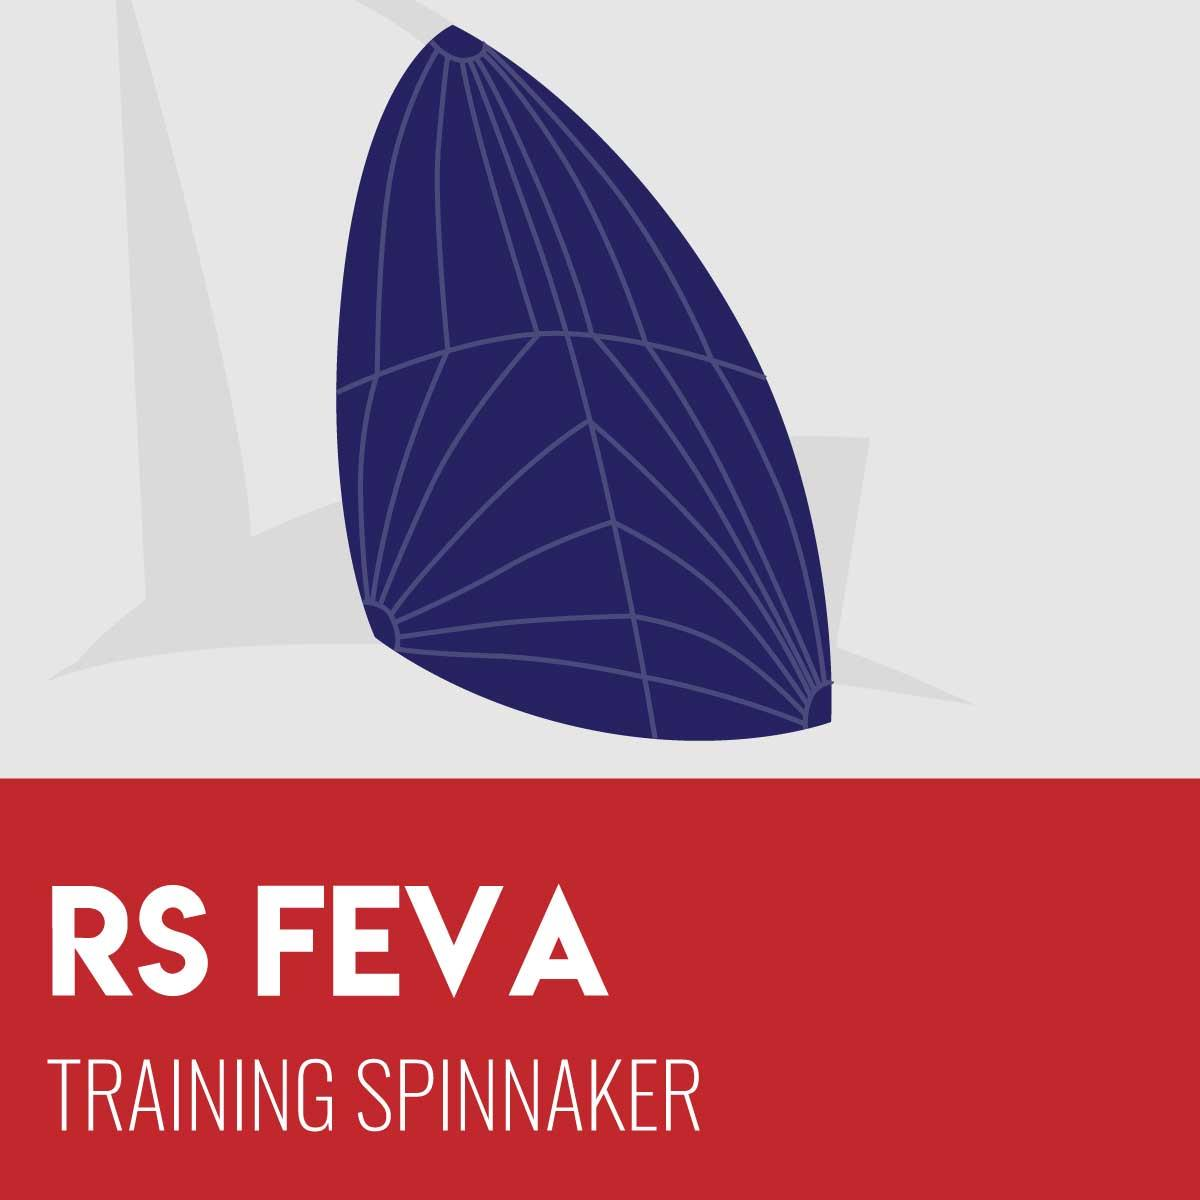 RS Feva Training Spinnaker